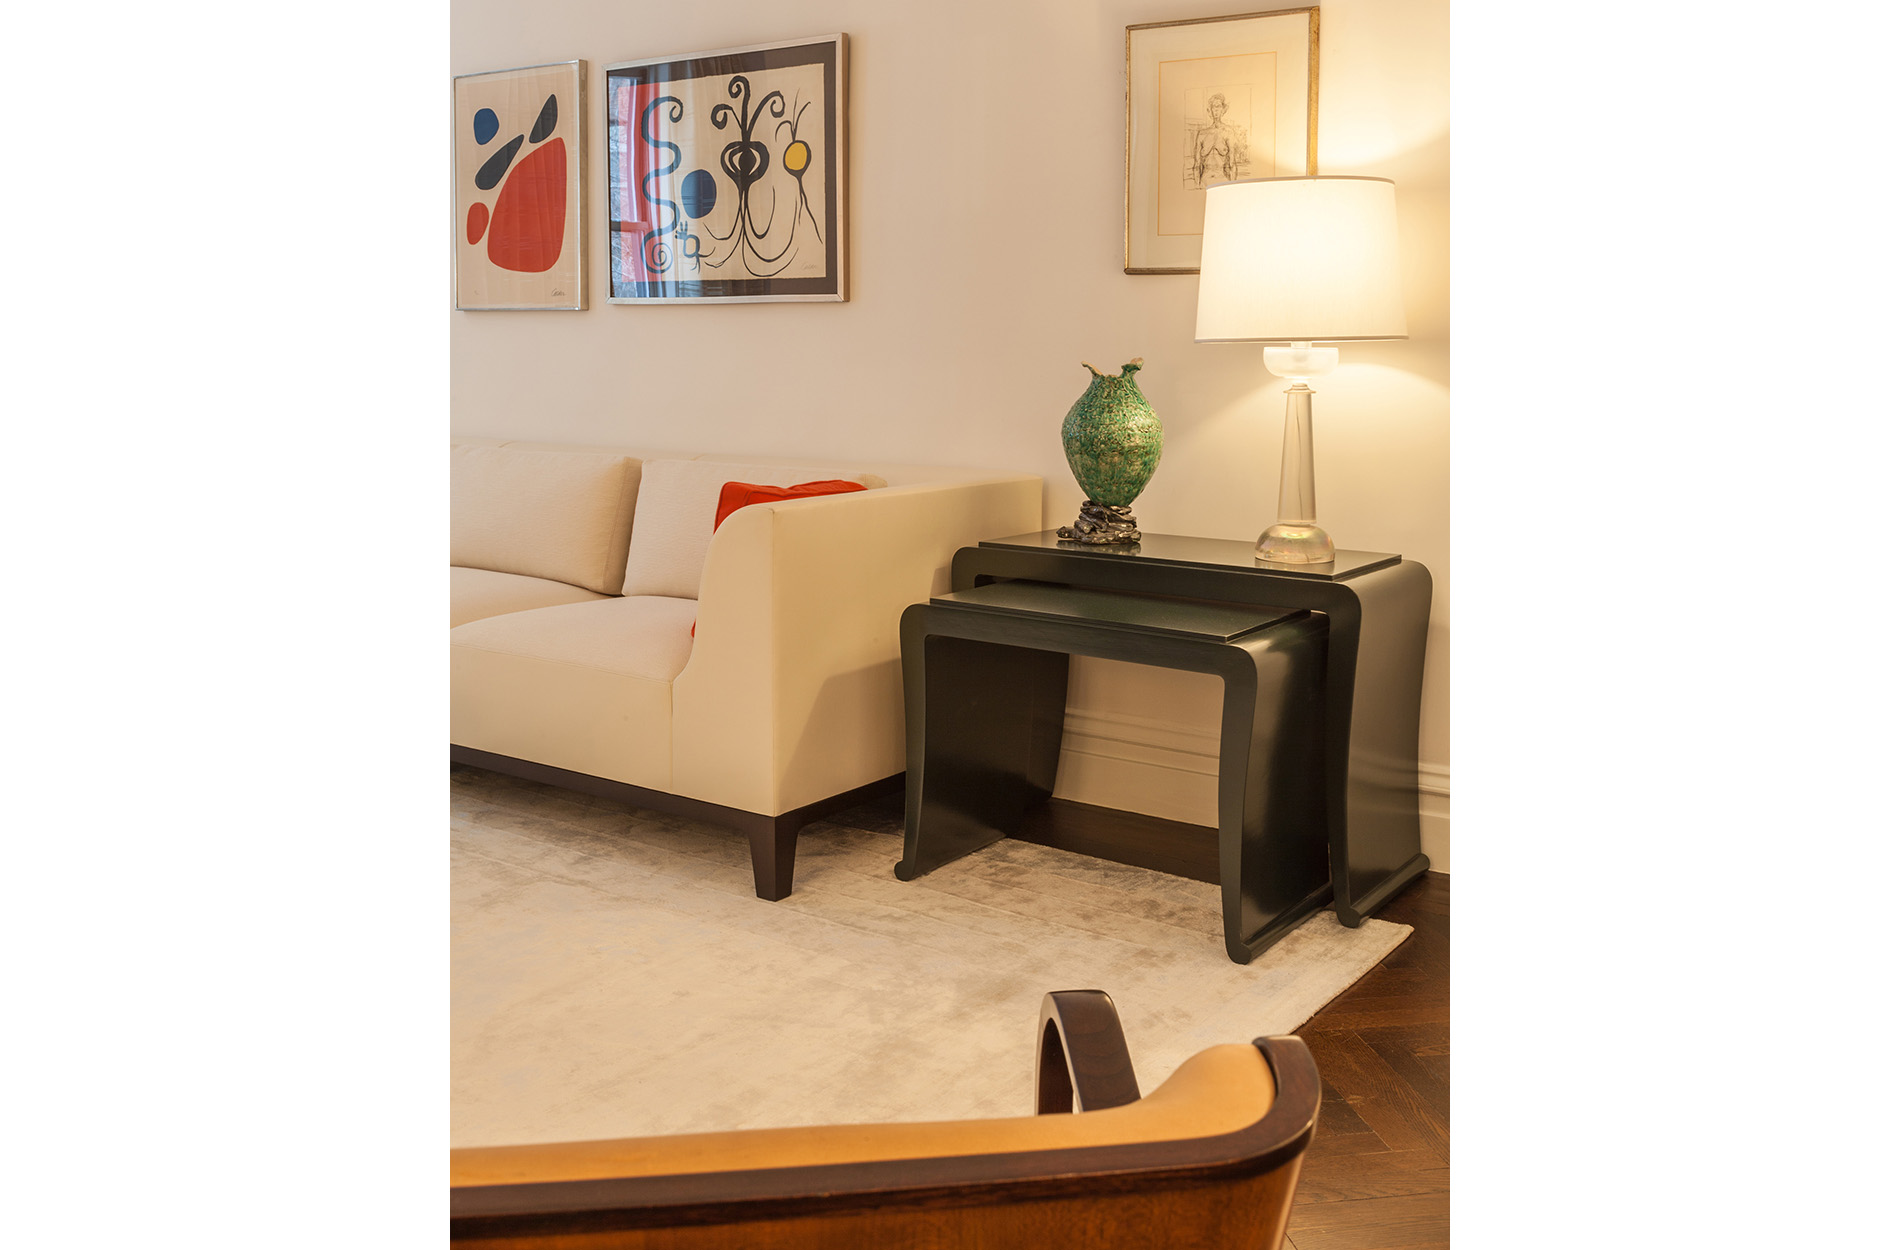 Brett Design Inc : Interior Design + Home Decor - FIFTH AVENUE APARTMENT